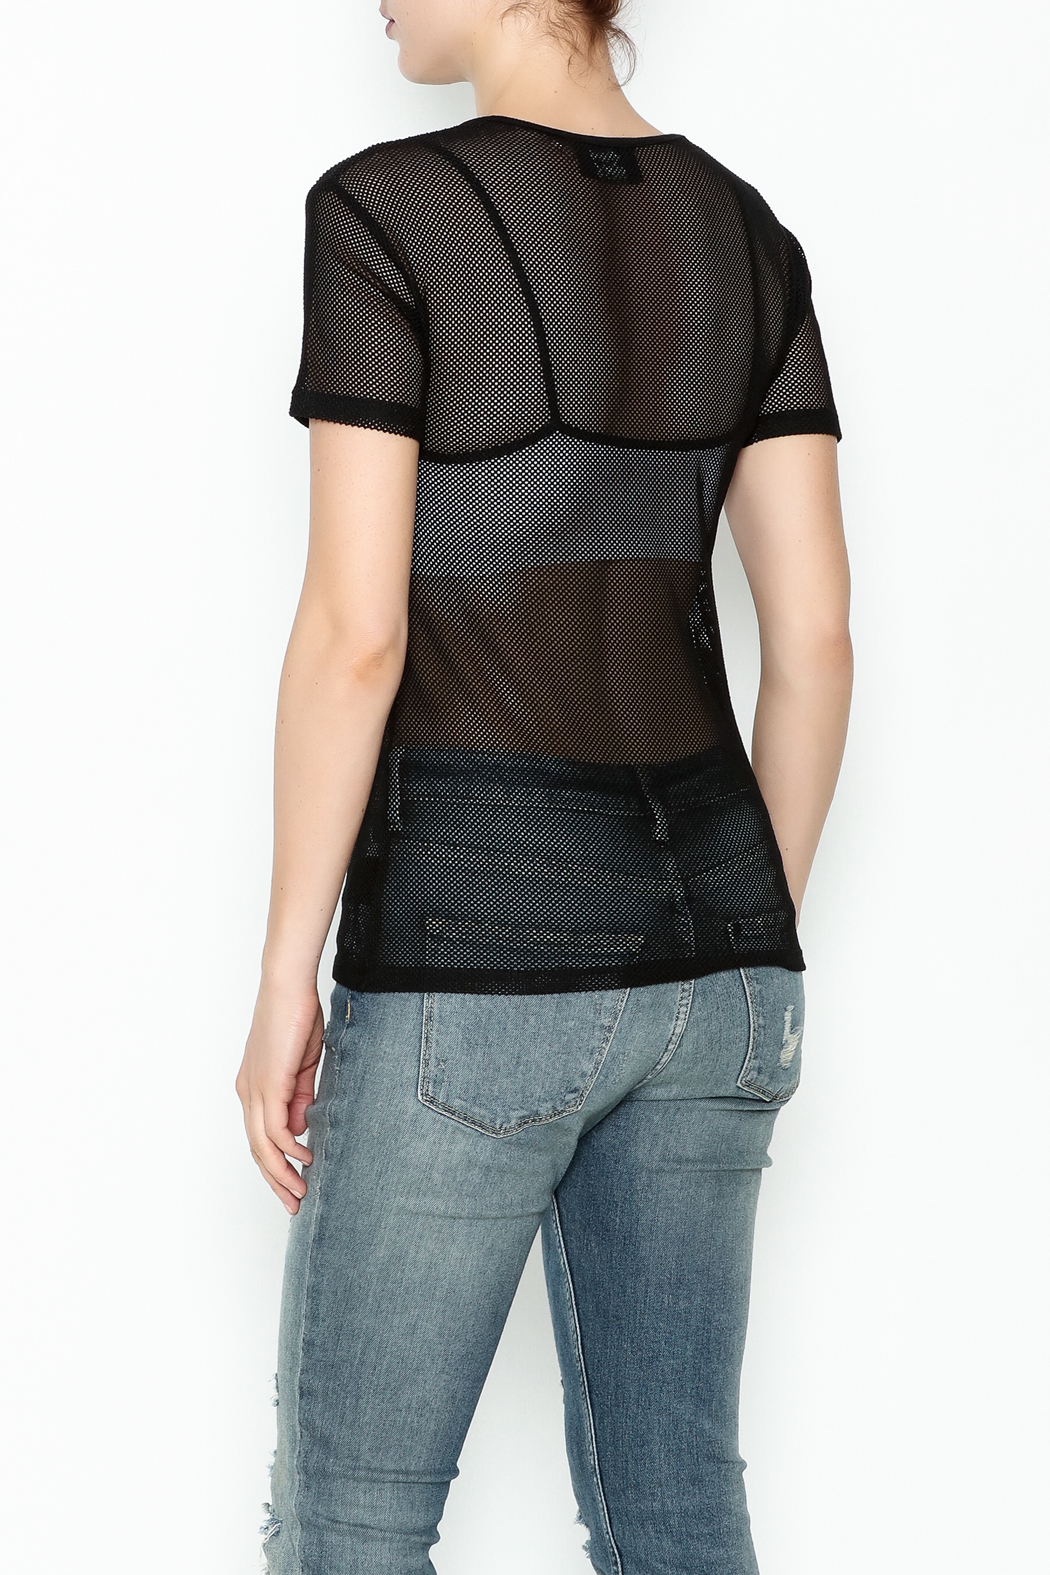 storia Mesh Net Top - Back Cropped Image